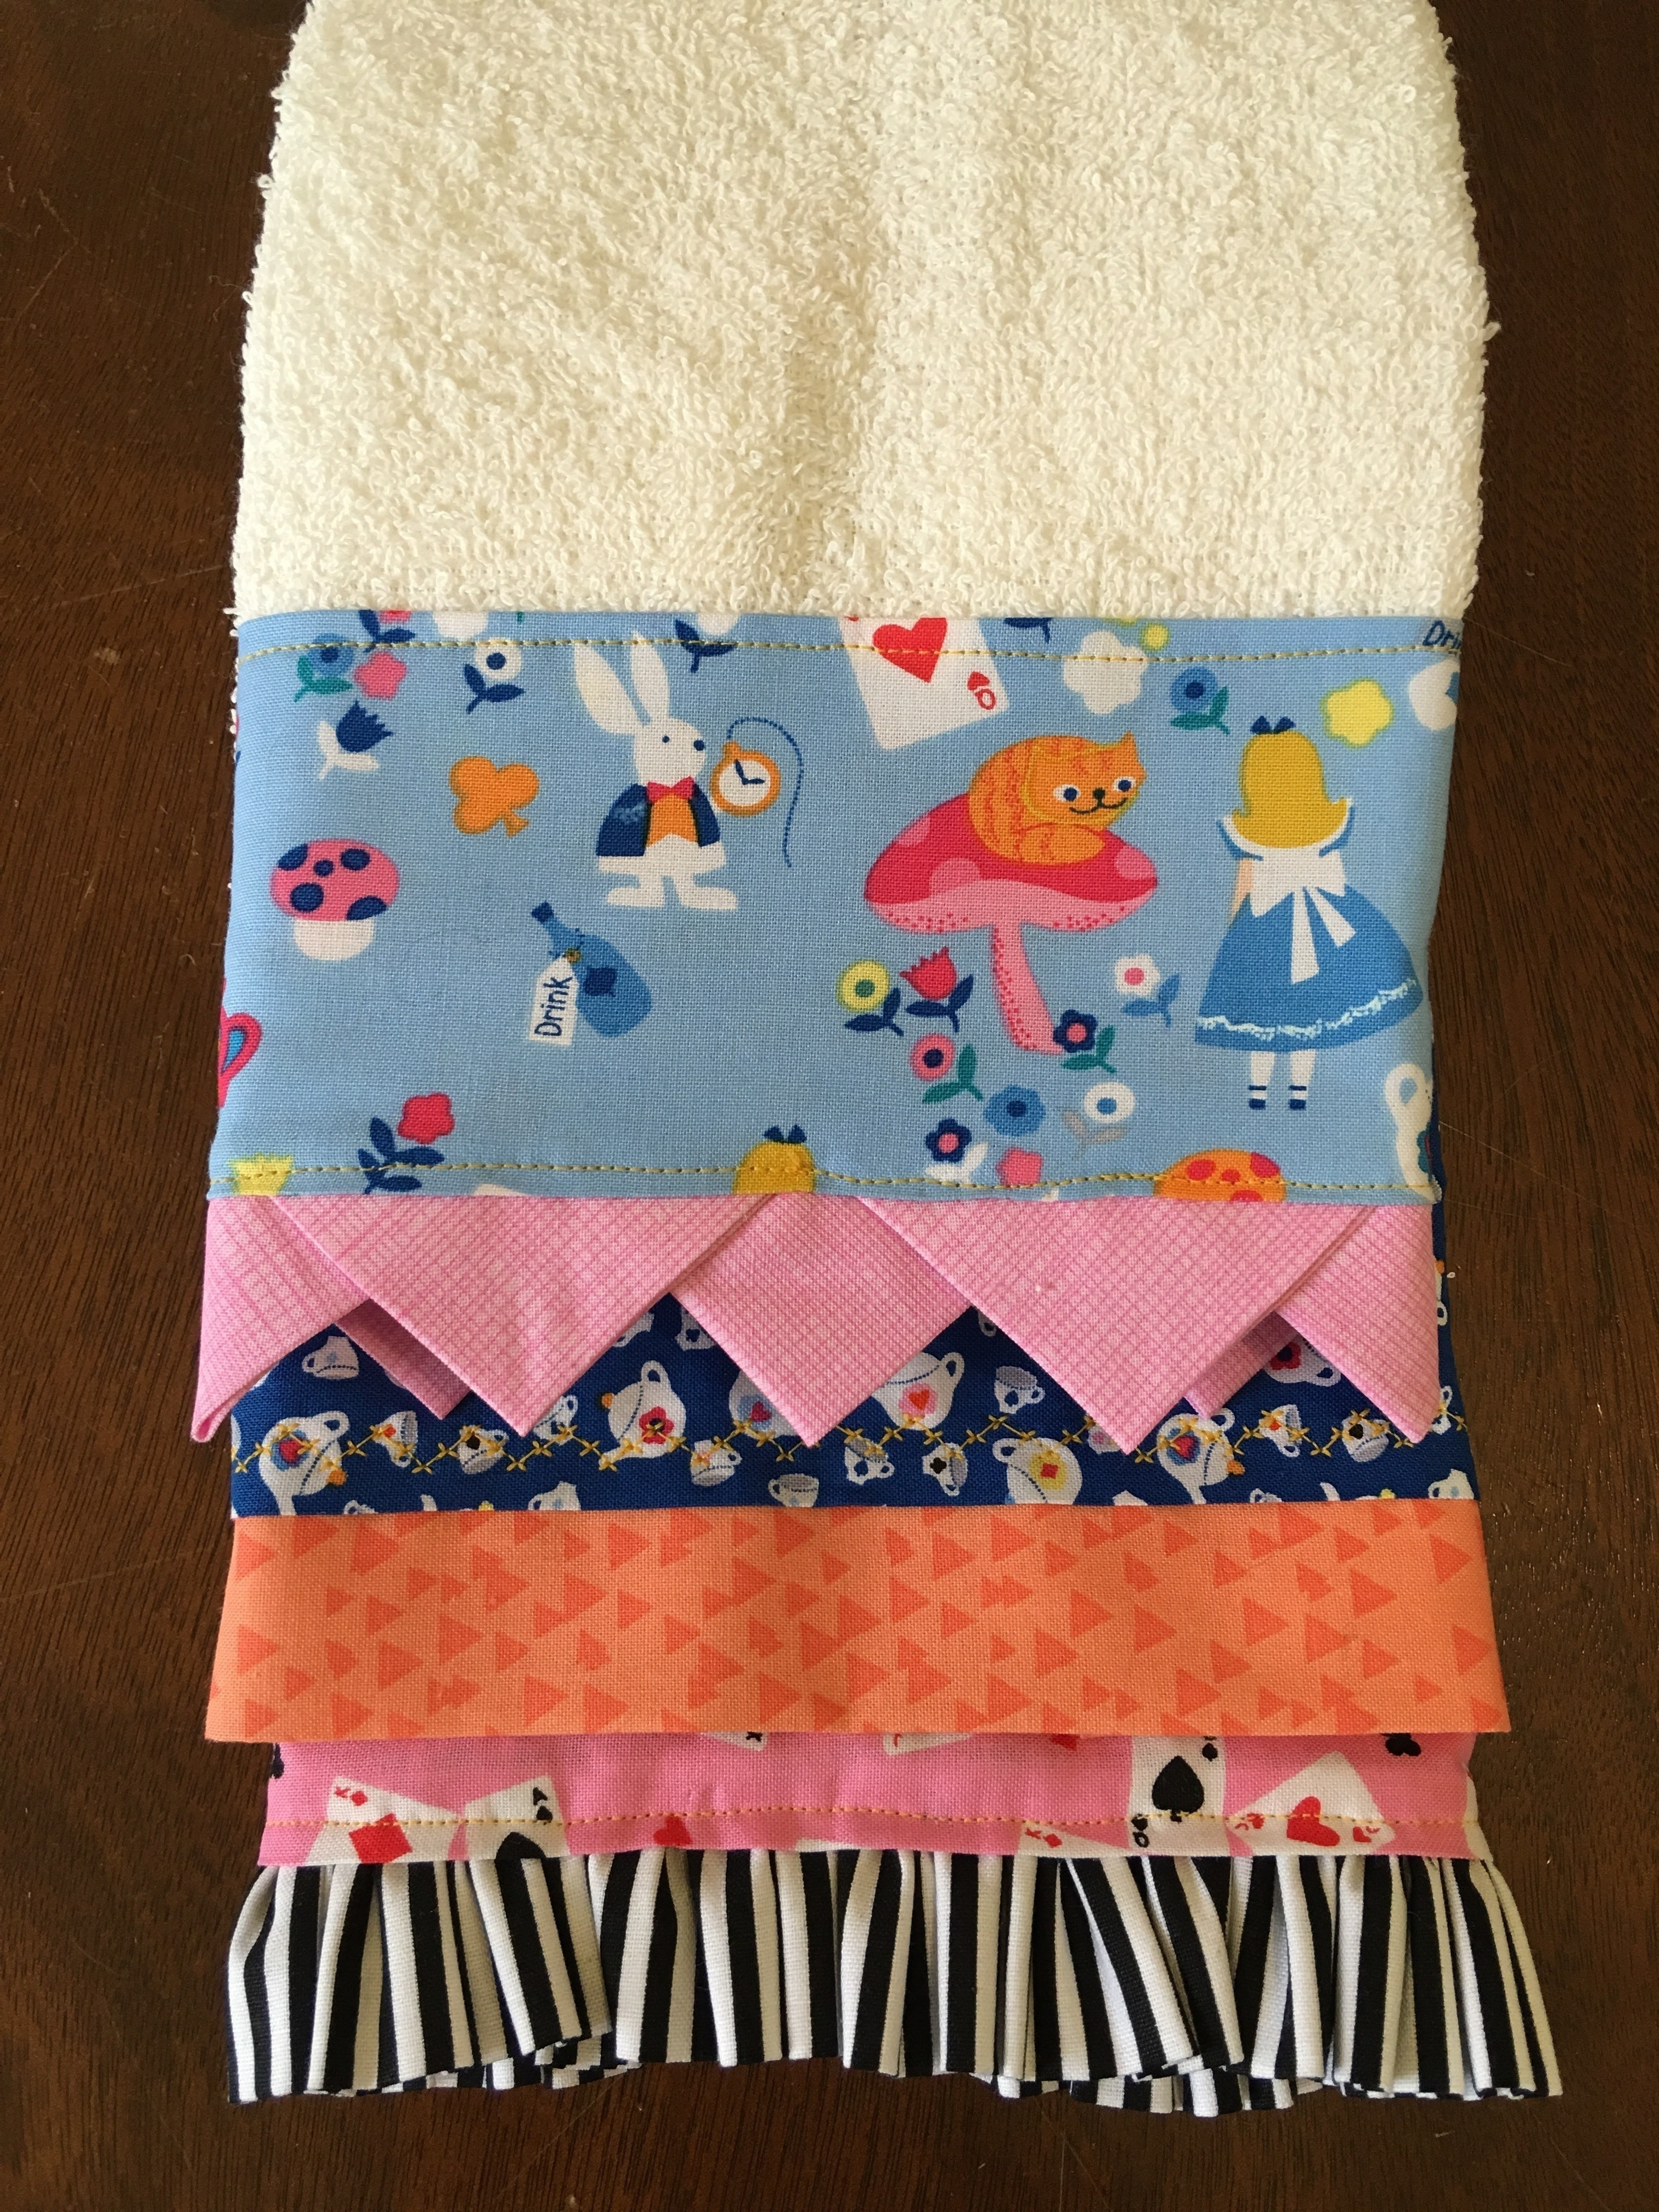 Decorated Hand Towel 183 How To Make A Towel 183 Sewing On Cut